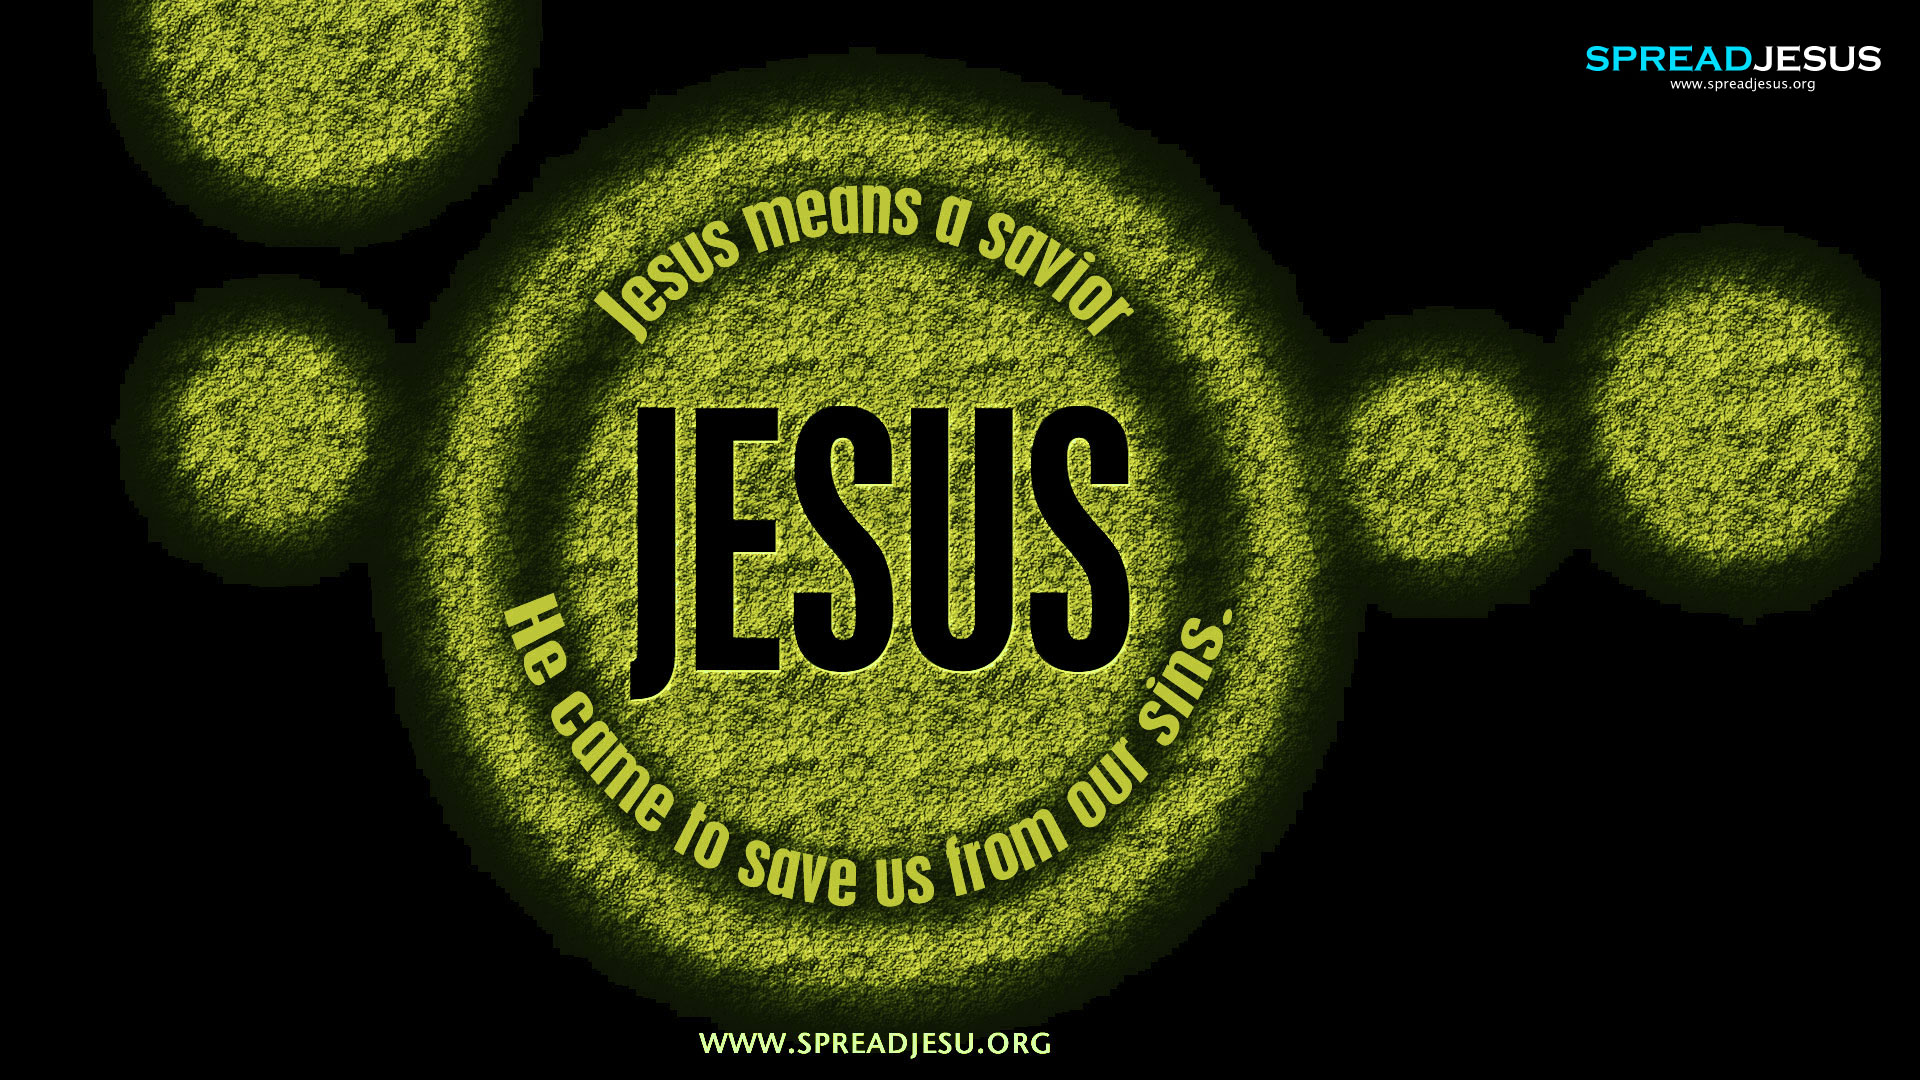 Jesus Means A Savior HD wallpapers free downloading Jesus Means A Savior He came to Save us from our Sins HD wallpaper 6 VIEW AND DOWNLOAD